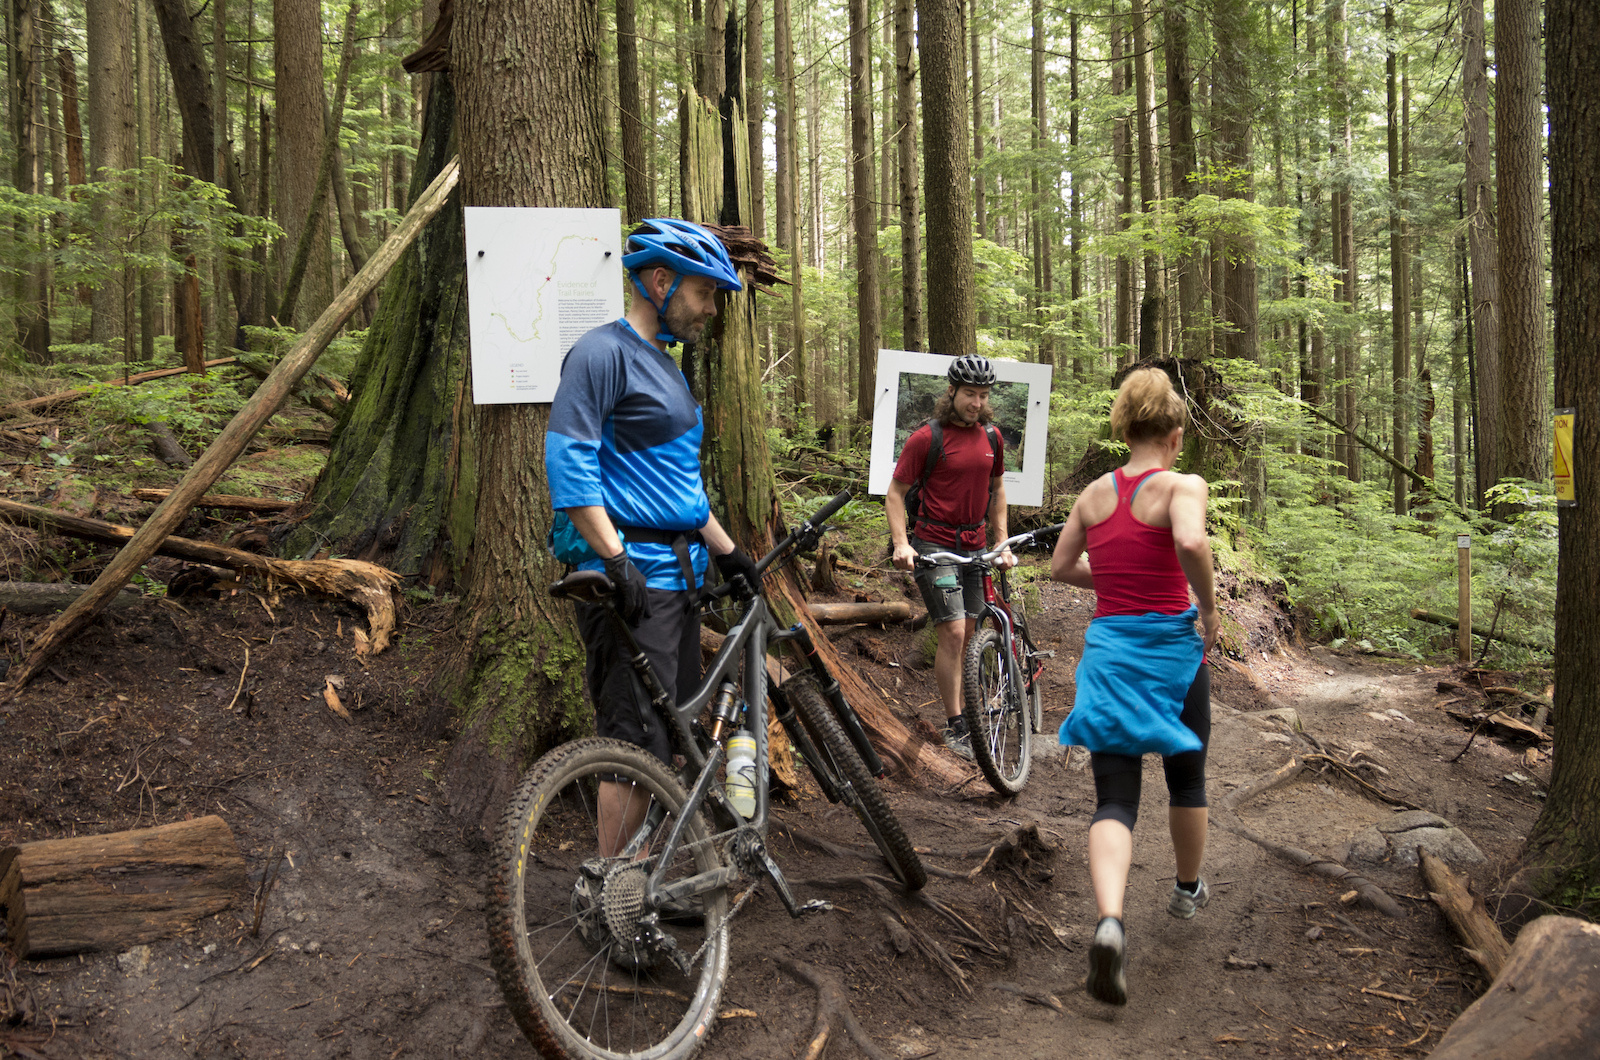 The trail is frequented by runners and hikers who like it because the shallow angle is easy on their knees and because it s uphill only for bikes when they encounter a bikers it s at a slow speed.